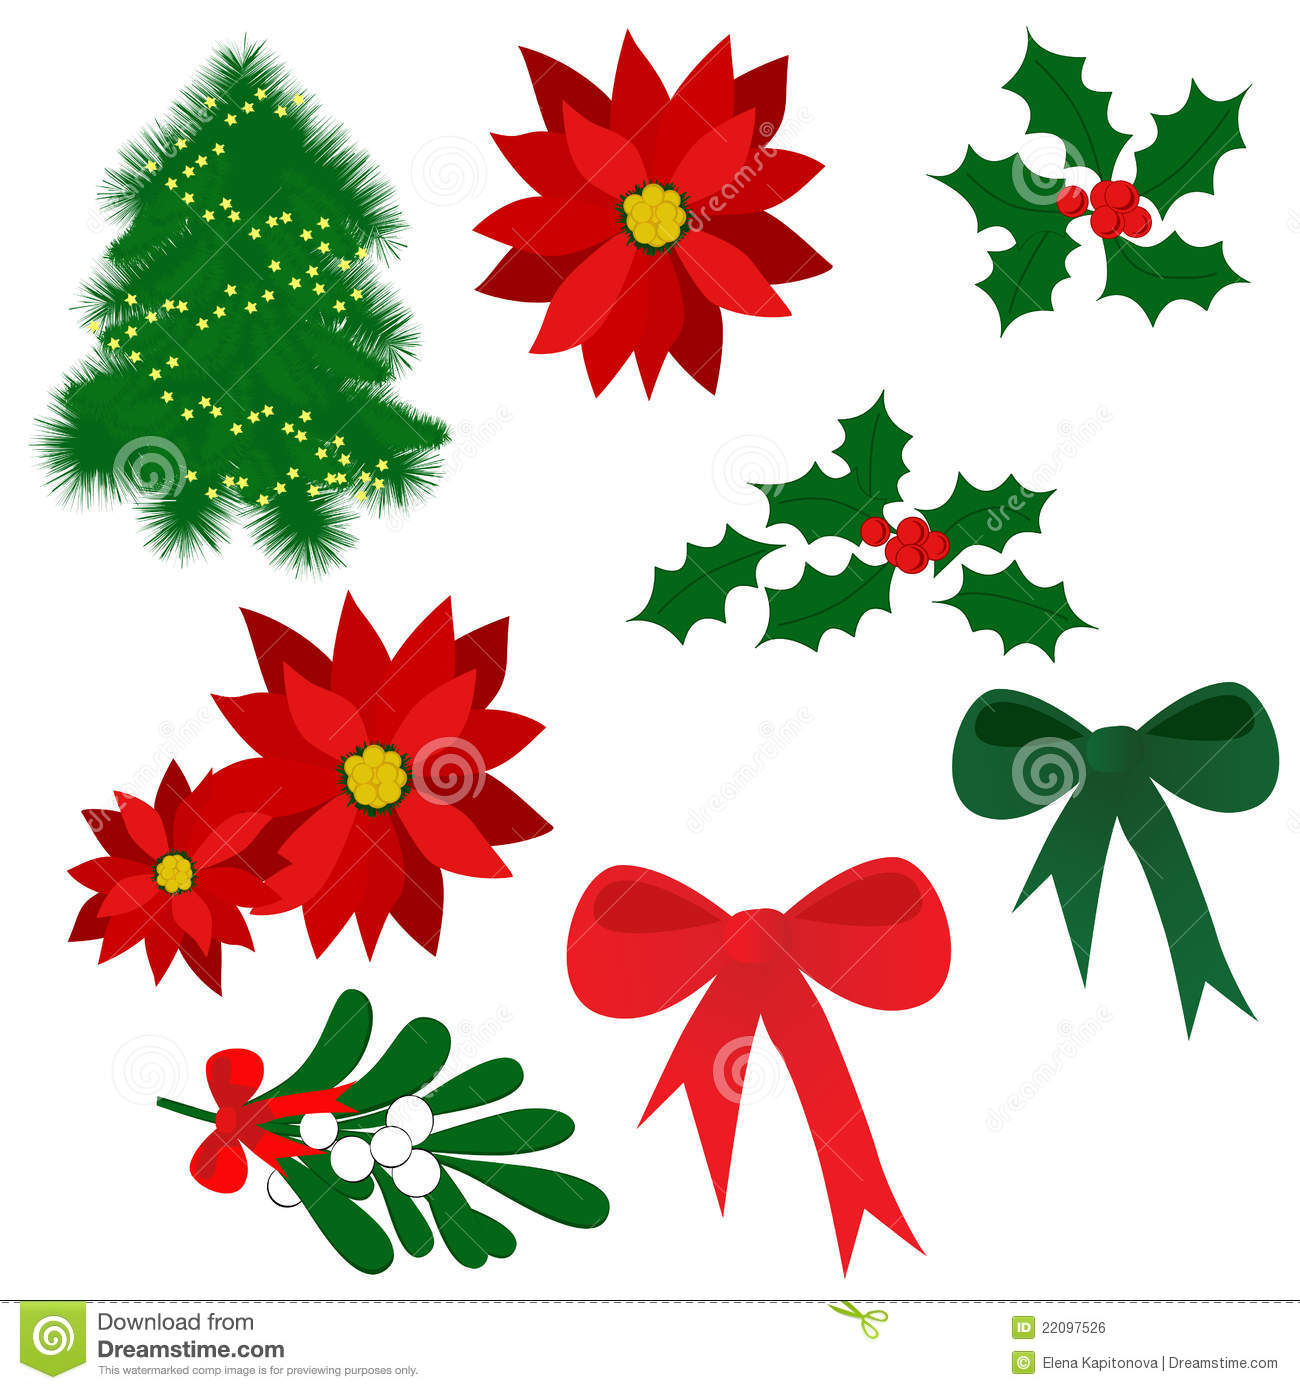 Is A Christmas Tree A Religious Symbol: Christmas Symbols Royalty Free Stock Image